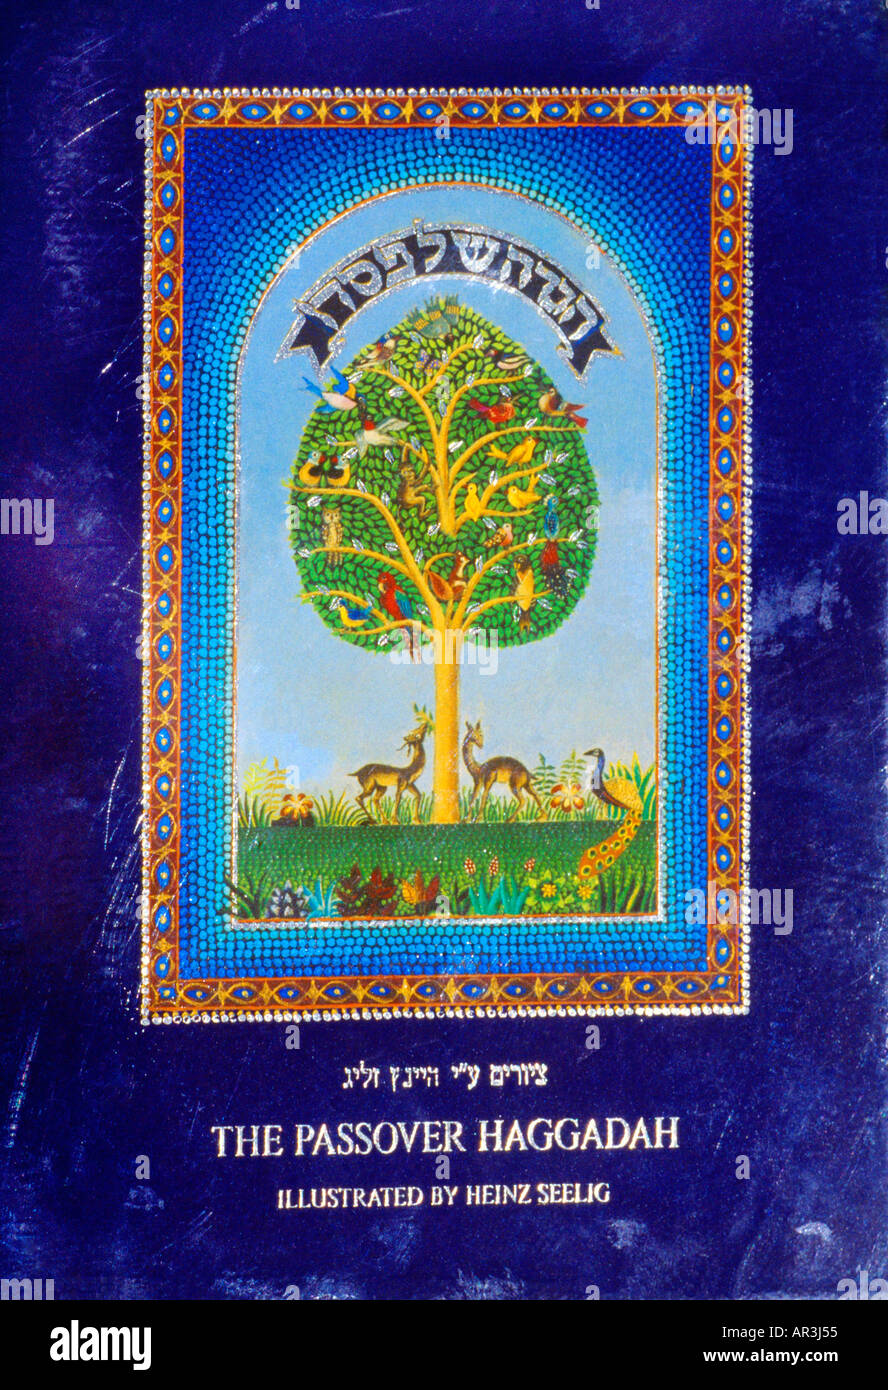 Passover Haggadah Judaism  Illustrations By Heinz Sealig - Stock Image